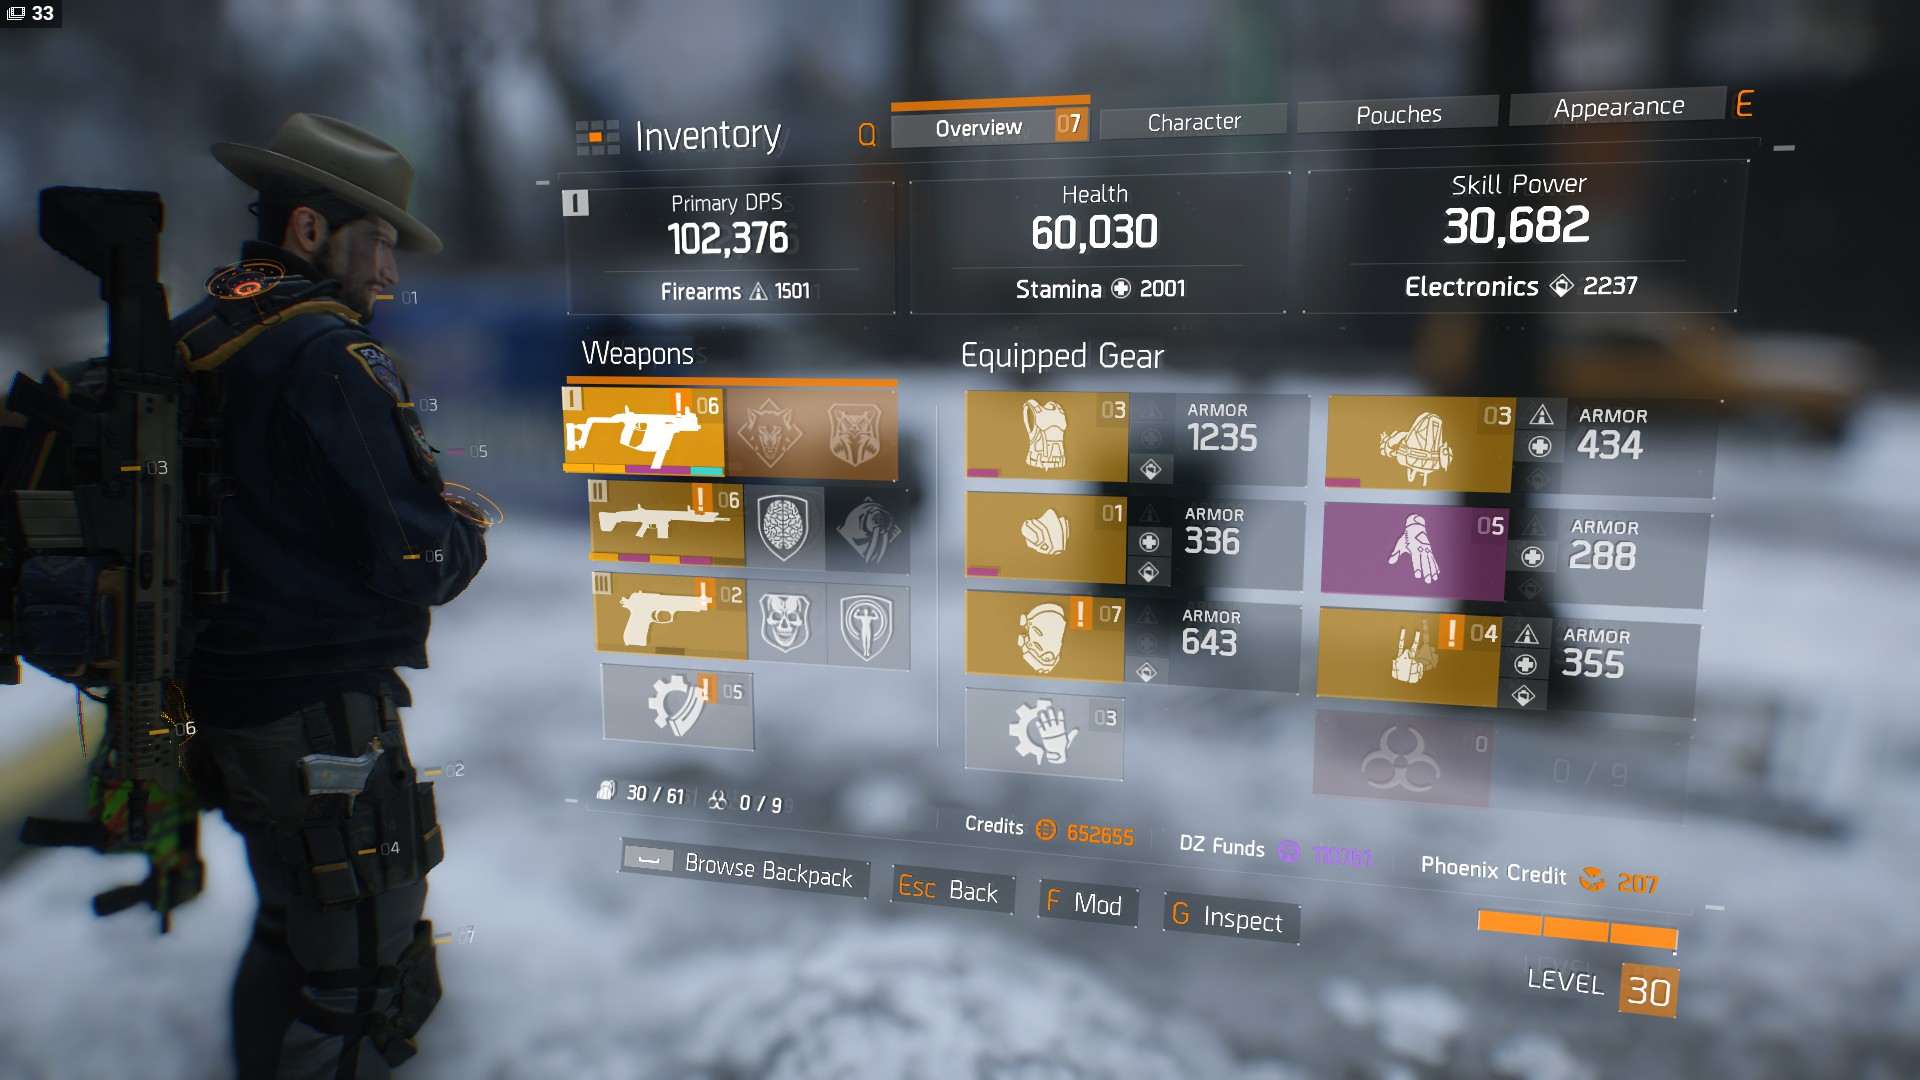 Sniper Build For Division